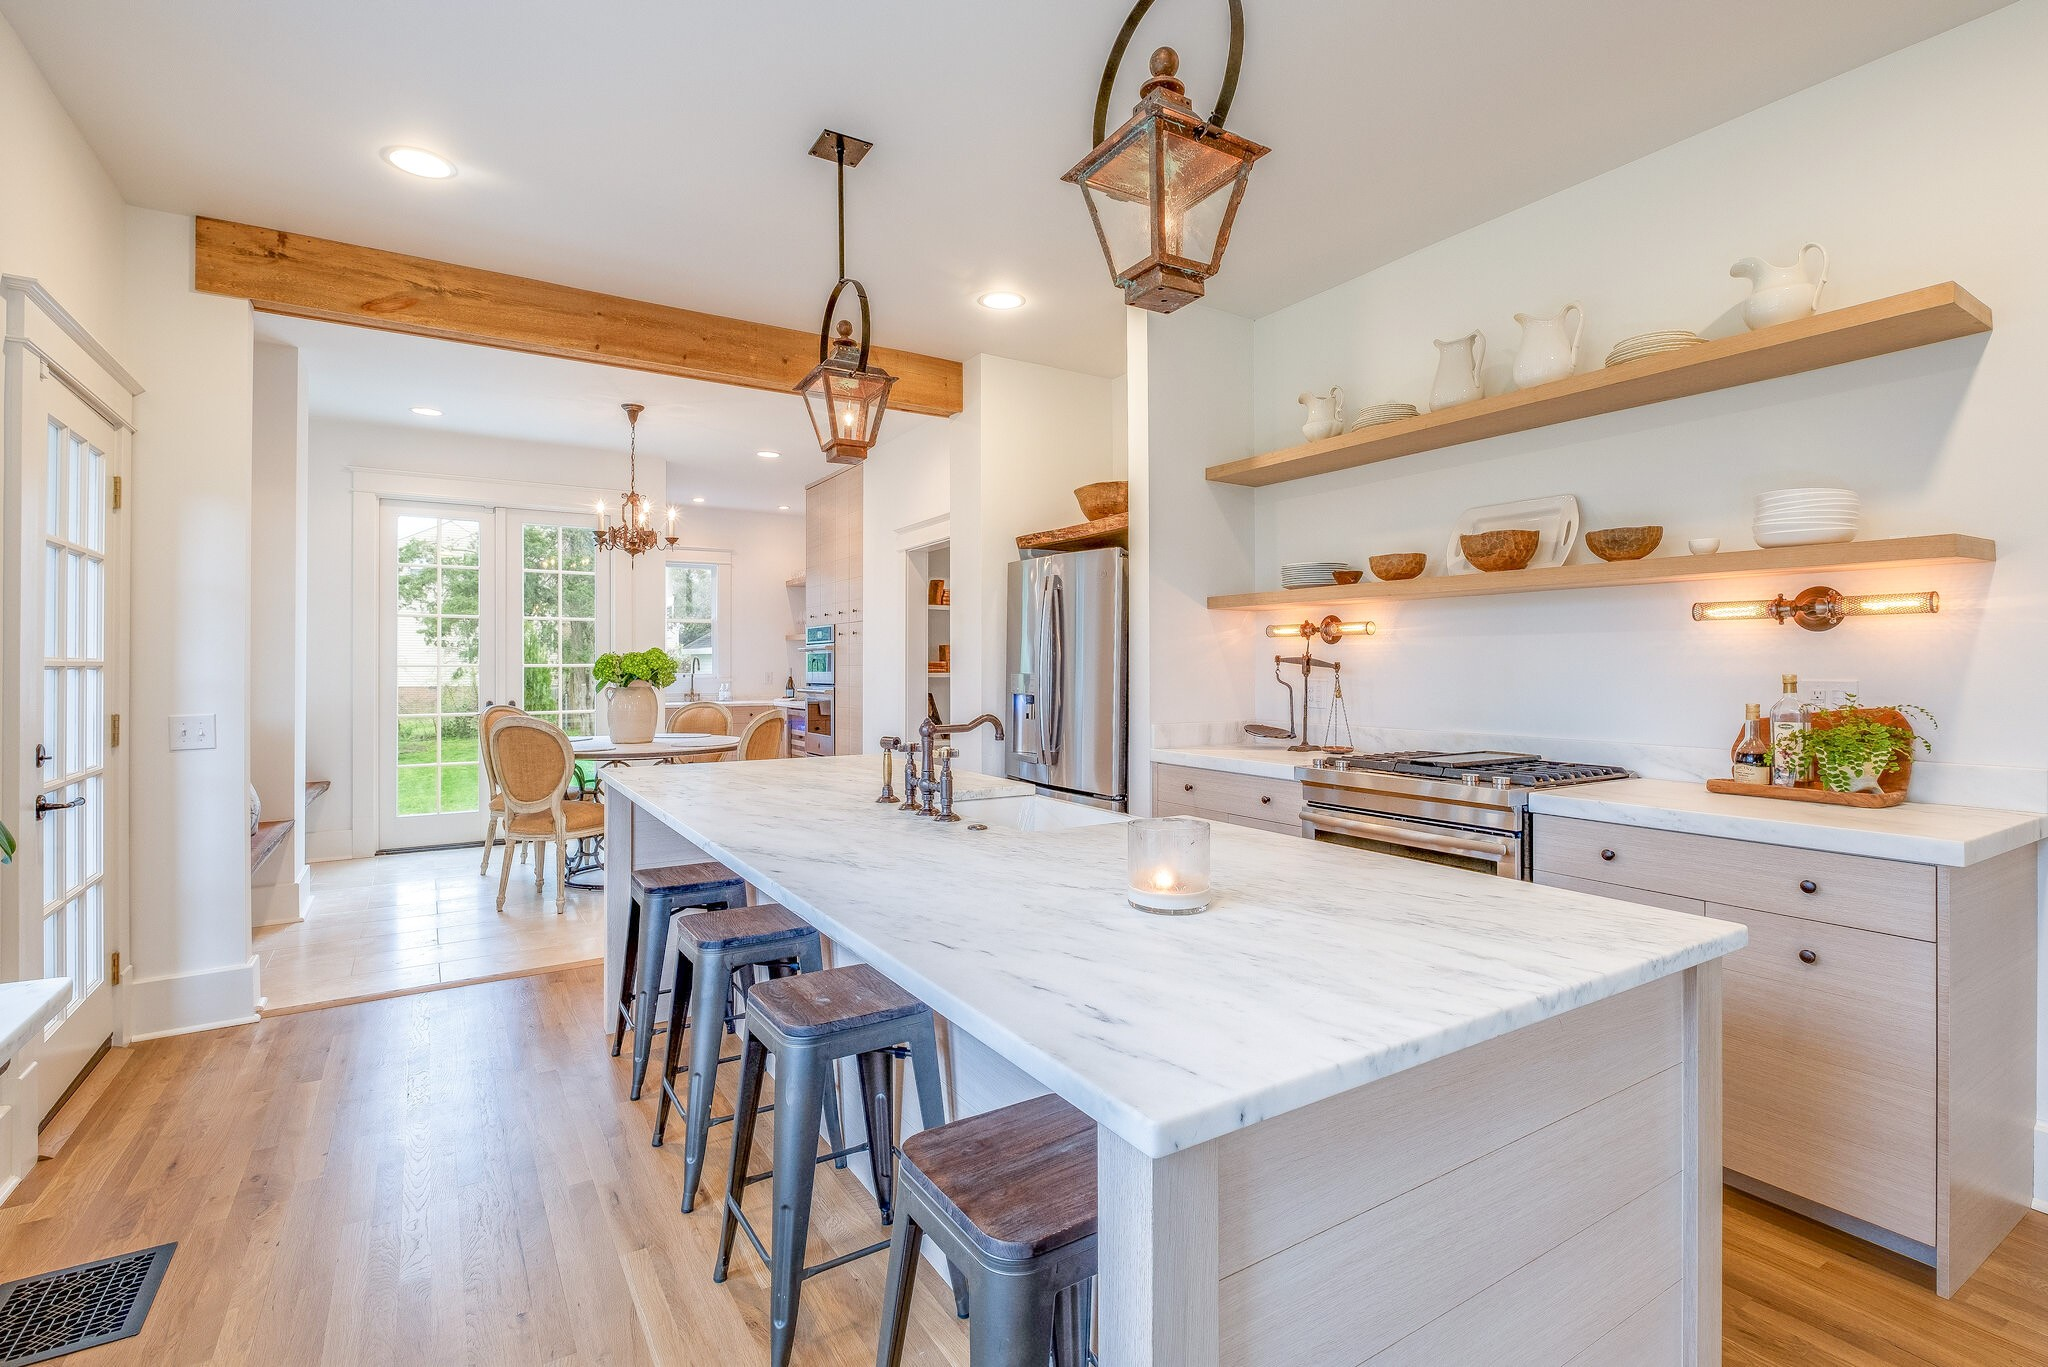 This 111 yr. old historic Foursquare estate has been completely & meticulously restored to include modern comforts & amenities.  You will love the beautifully landscaped, private setting of this double lot in Green Hills. This home is heavily appointed with high-end custom fixtures, finishes, & vintage lighting throughout making this property one of a kind - unlike so many new-builds. Room for expansion!